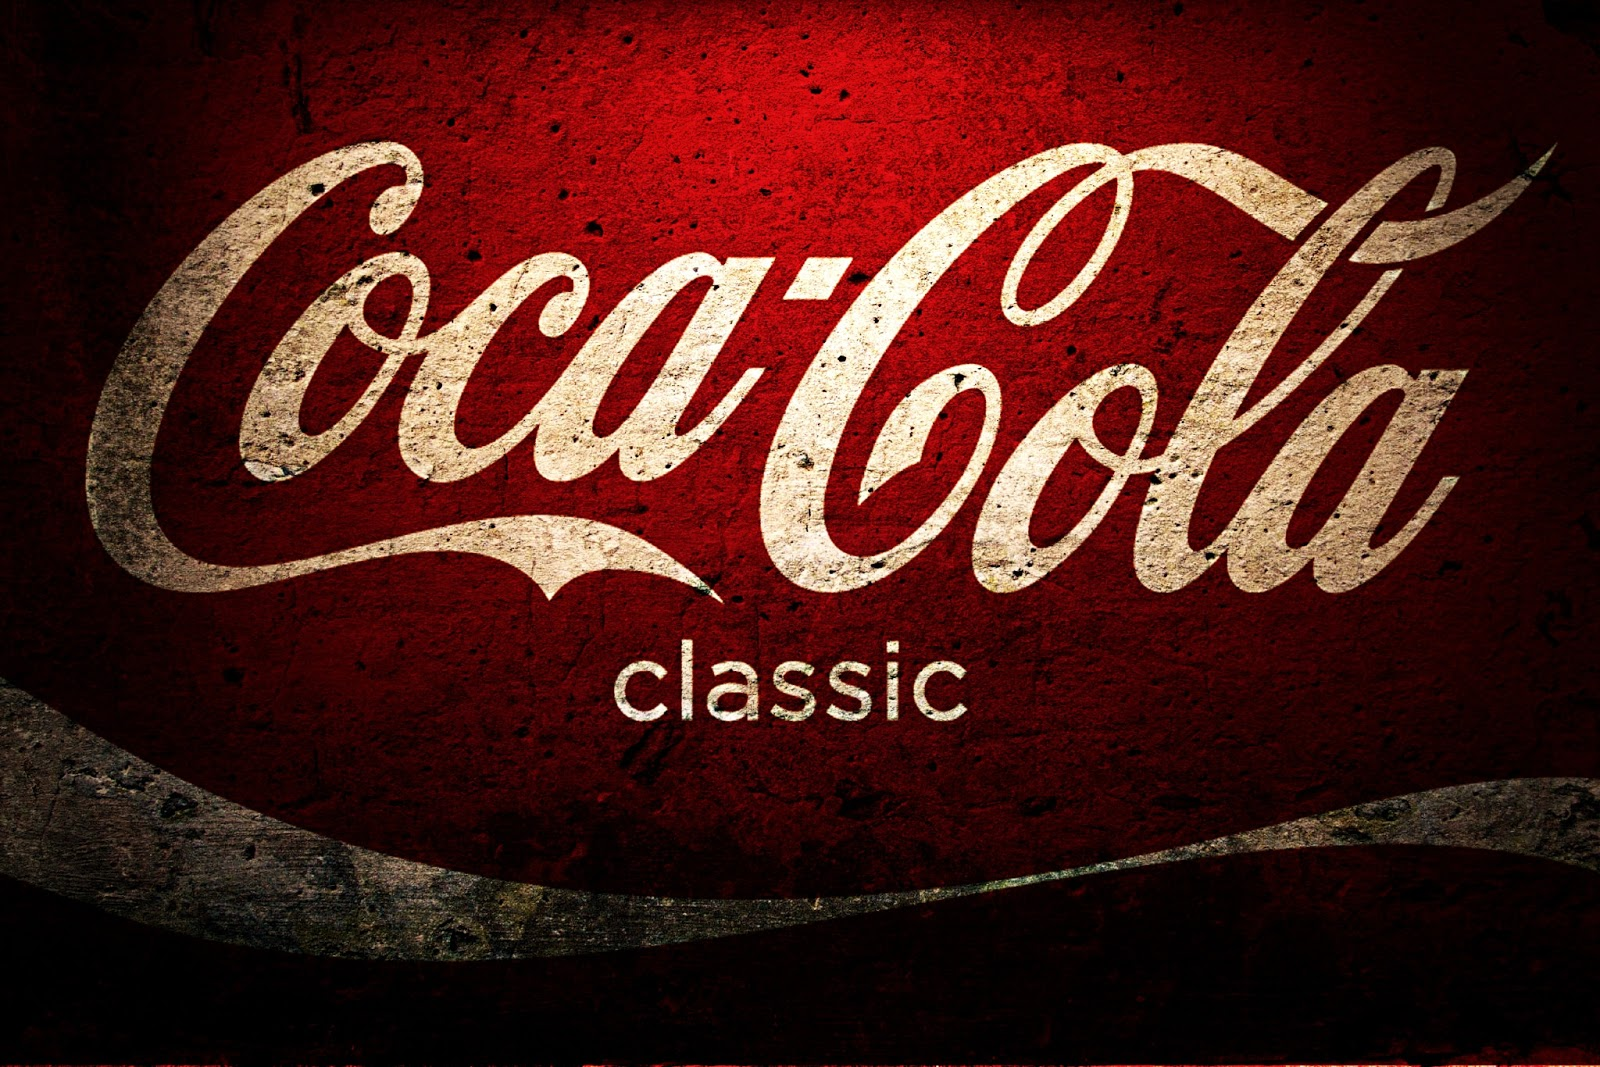 http://3.bp.blogspot.com/-HQRXJafK_Kk/UTIZOotVp5I/AAAAAAAAByI/6UfiA_i9NdY/s1600/hd-wallpapers-coca-cola-2122-hd-wallpapers.jpg